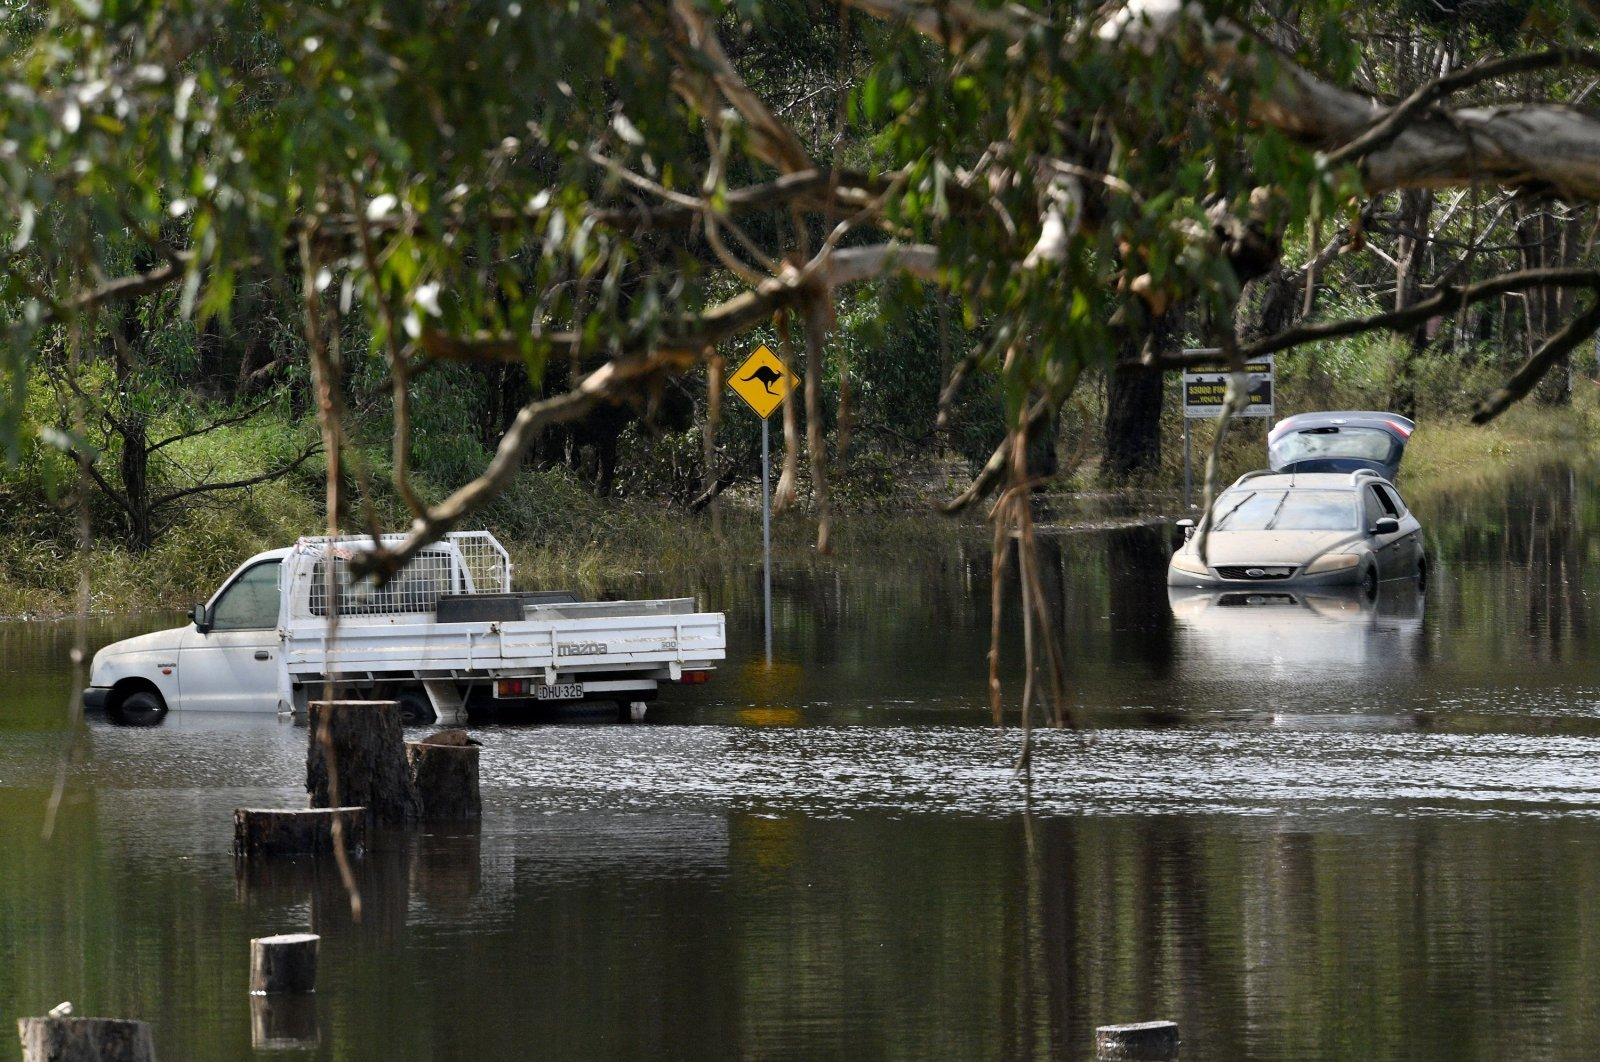 Cars sit in floodwaters as flood-stricken residents along Australia's east coast began a massive clean up effort following days of floods, Londonderry,Sydney, March 25, 2021. (AFP Photo)